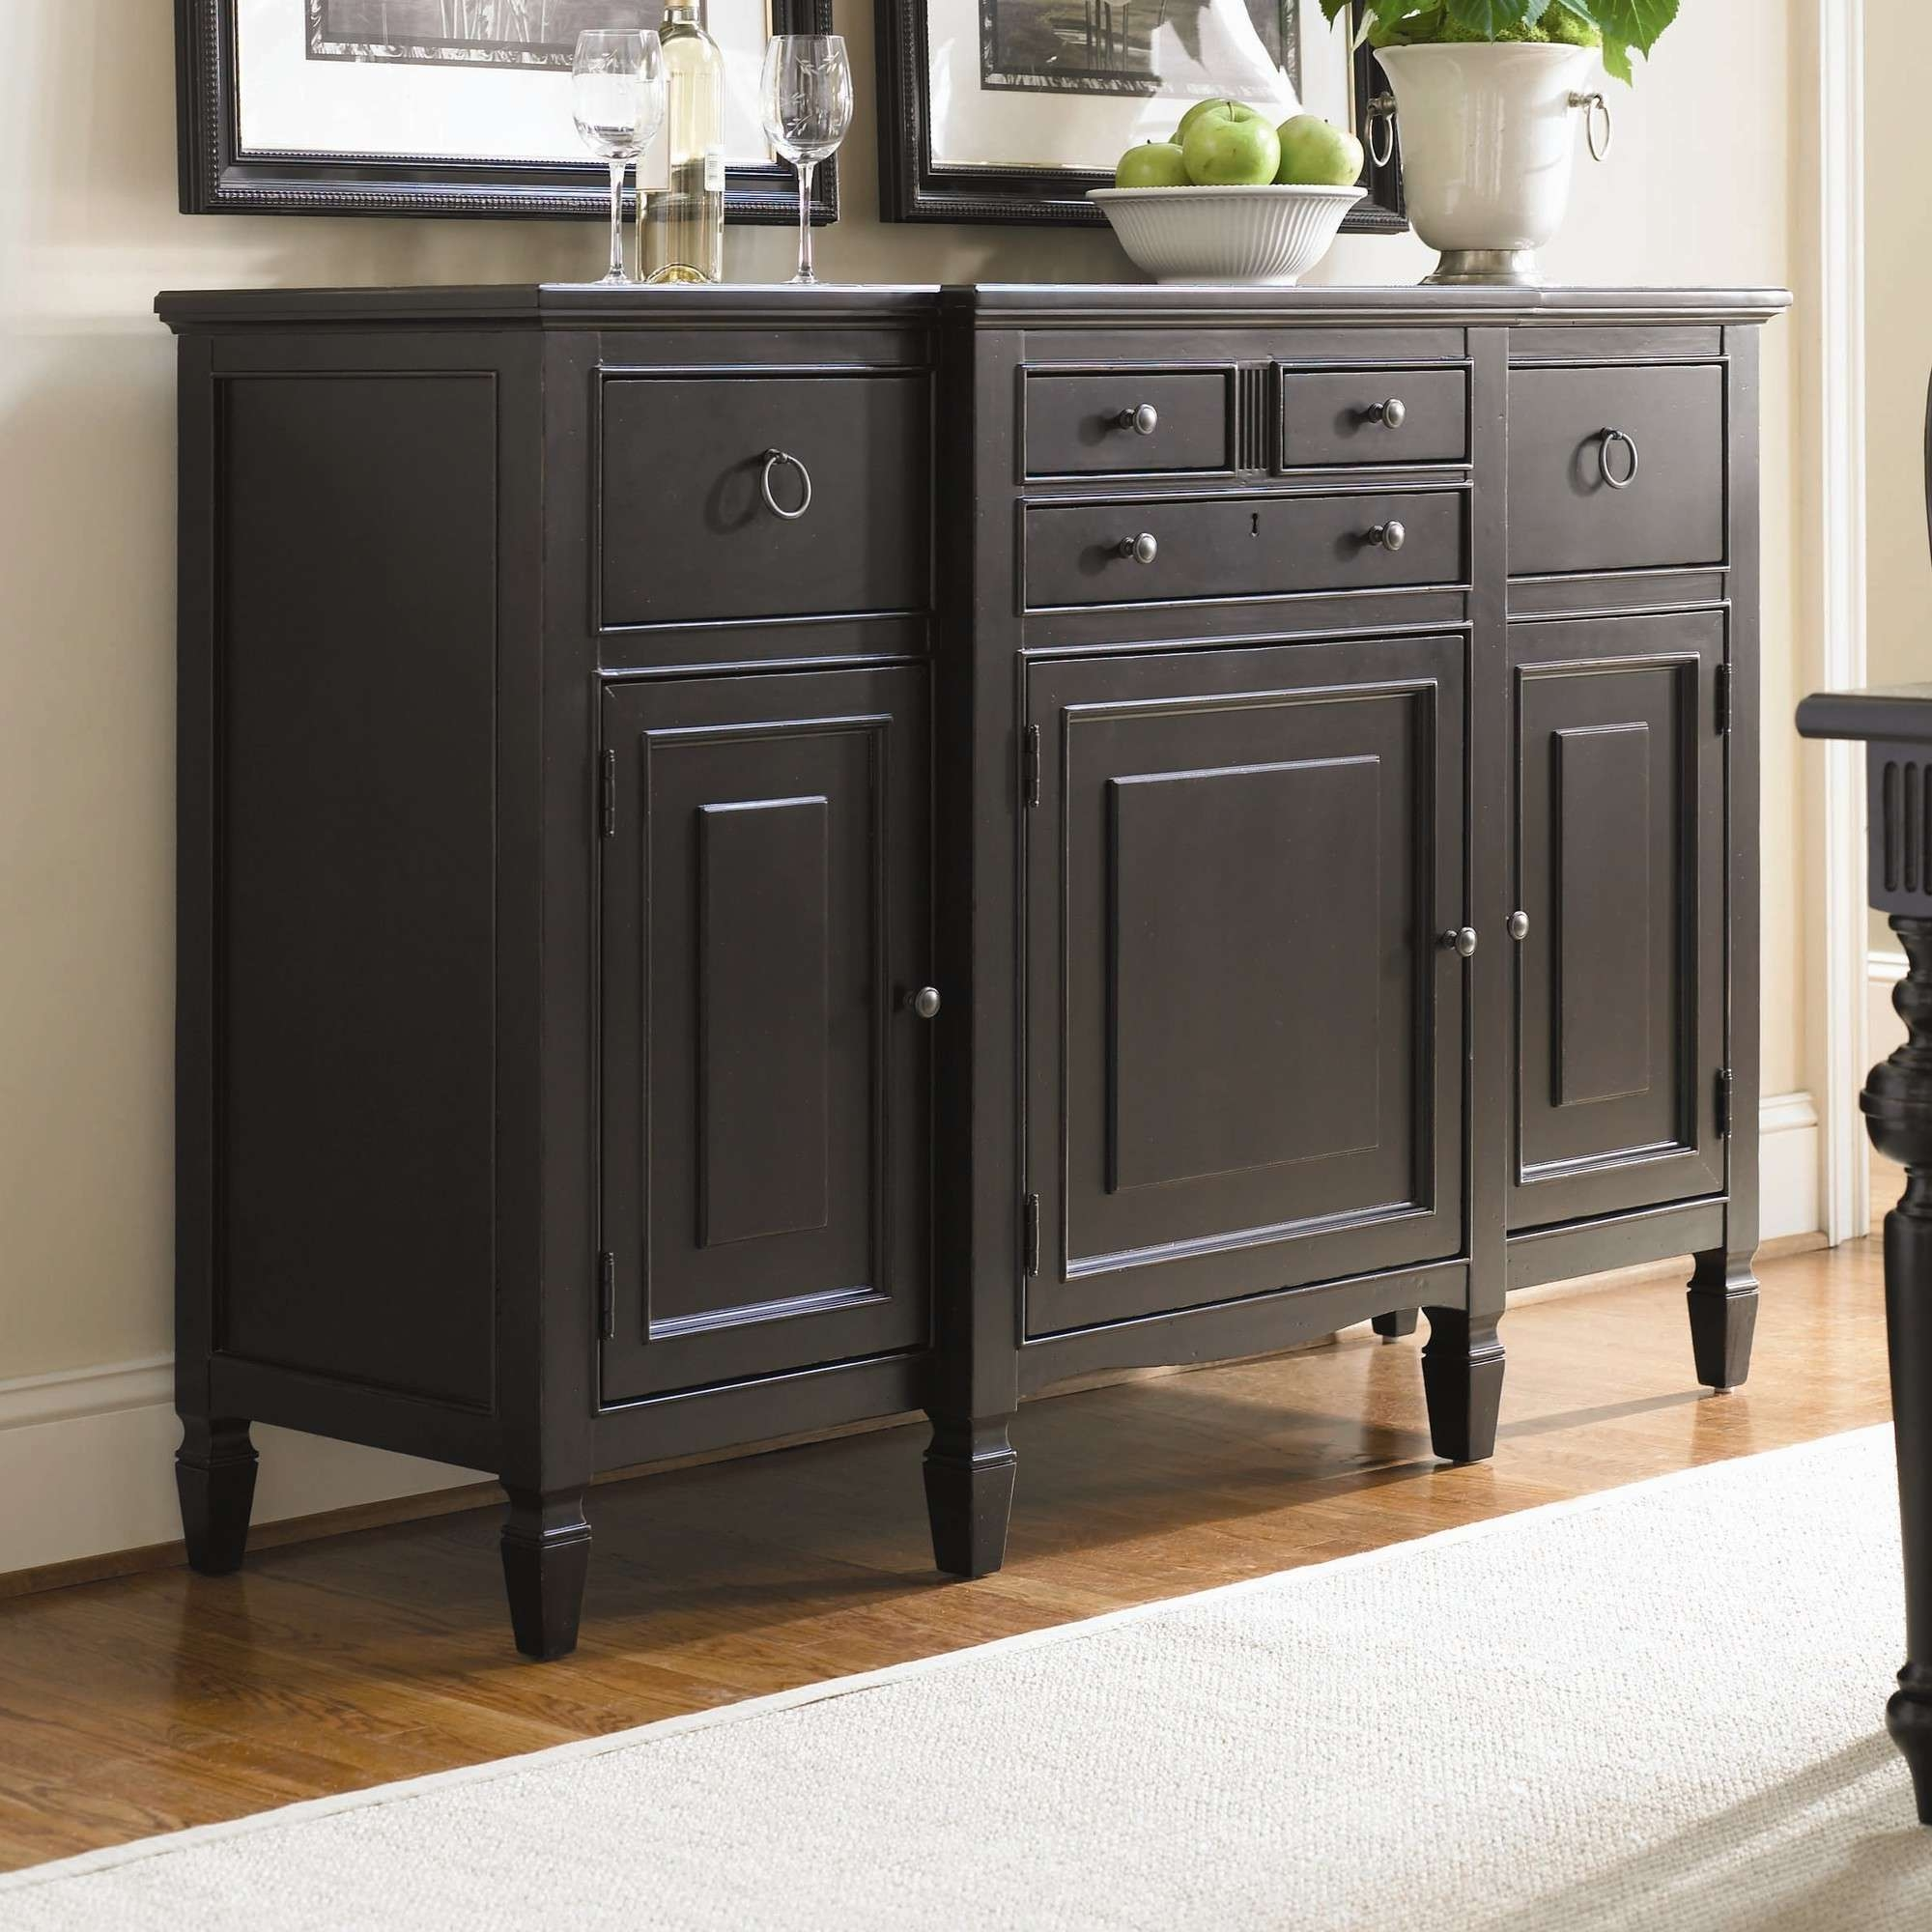 Rustic Sideboard Furniture Get Extra Dining Room Storage Trends Pertaining To Furniture Sideboards (View 8 of 20)